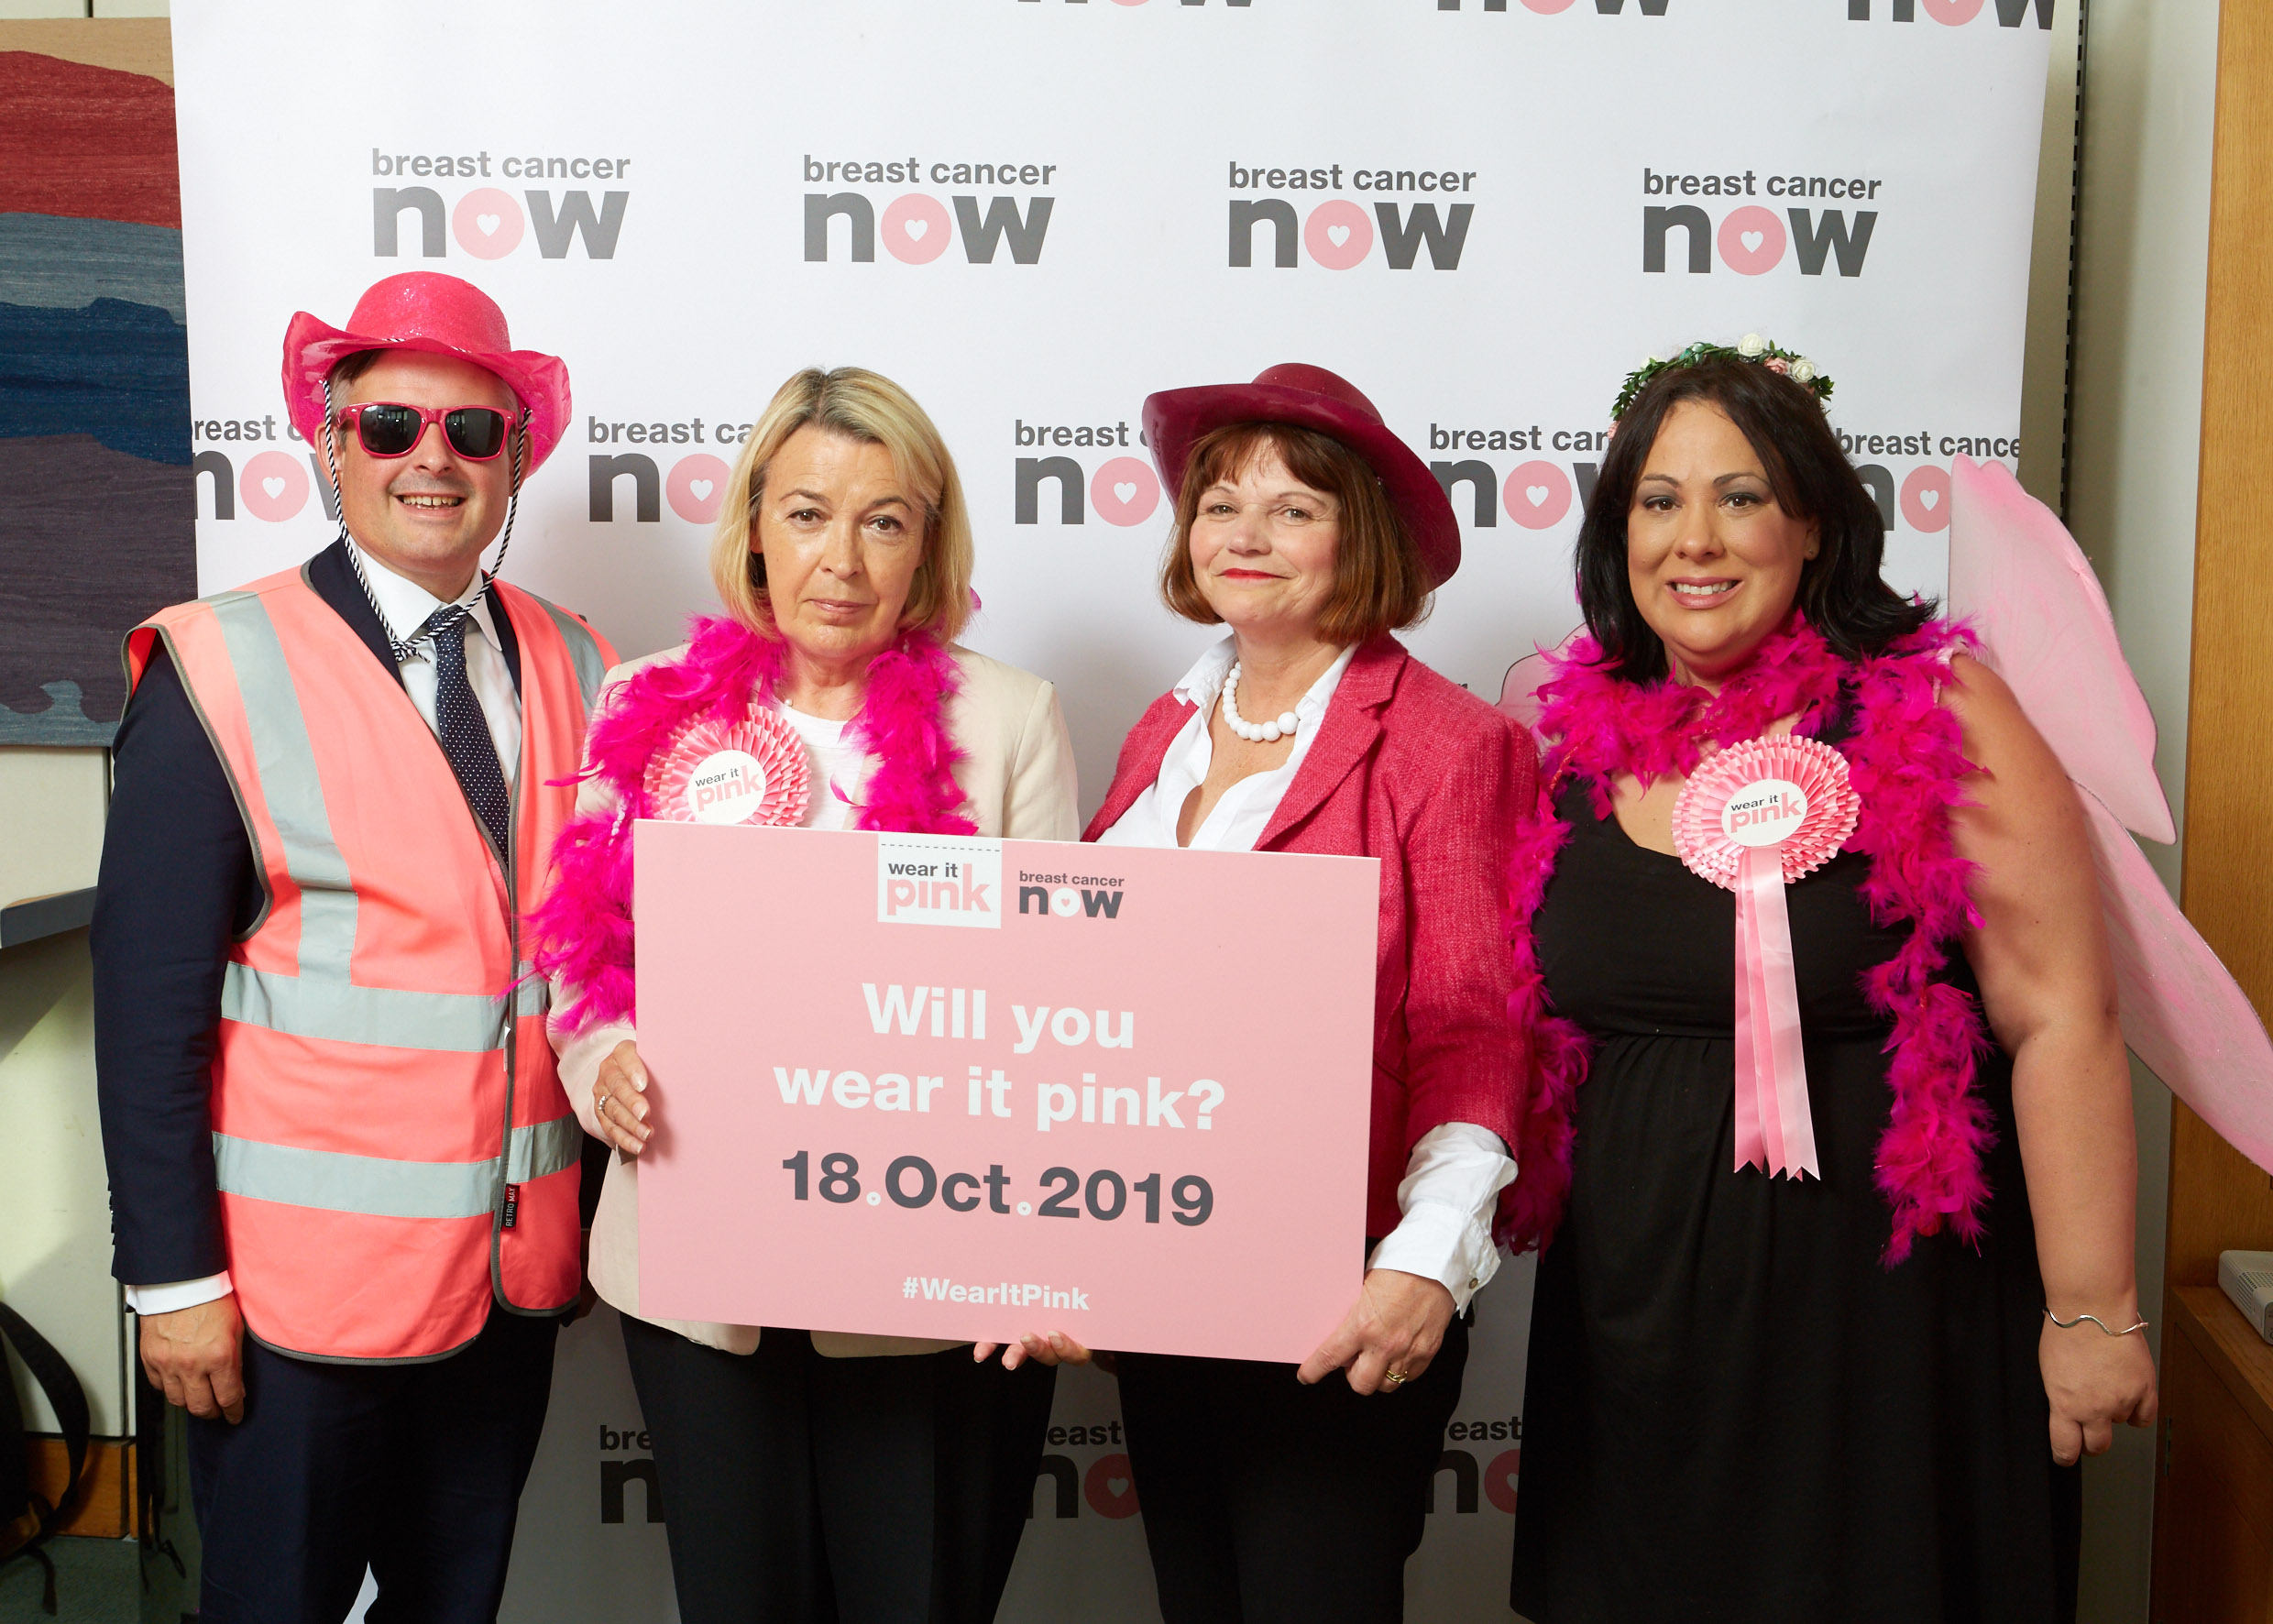 Jon is supporting #wearitpink on Friday 18th October which helps fund vital research and support - Tuesday 10 September 2019